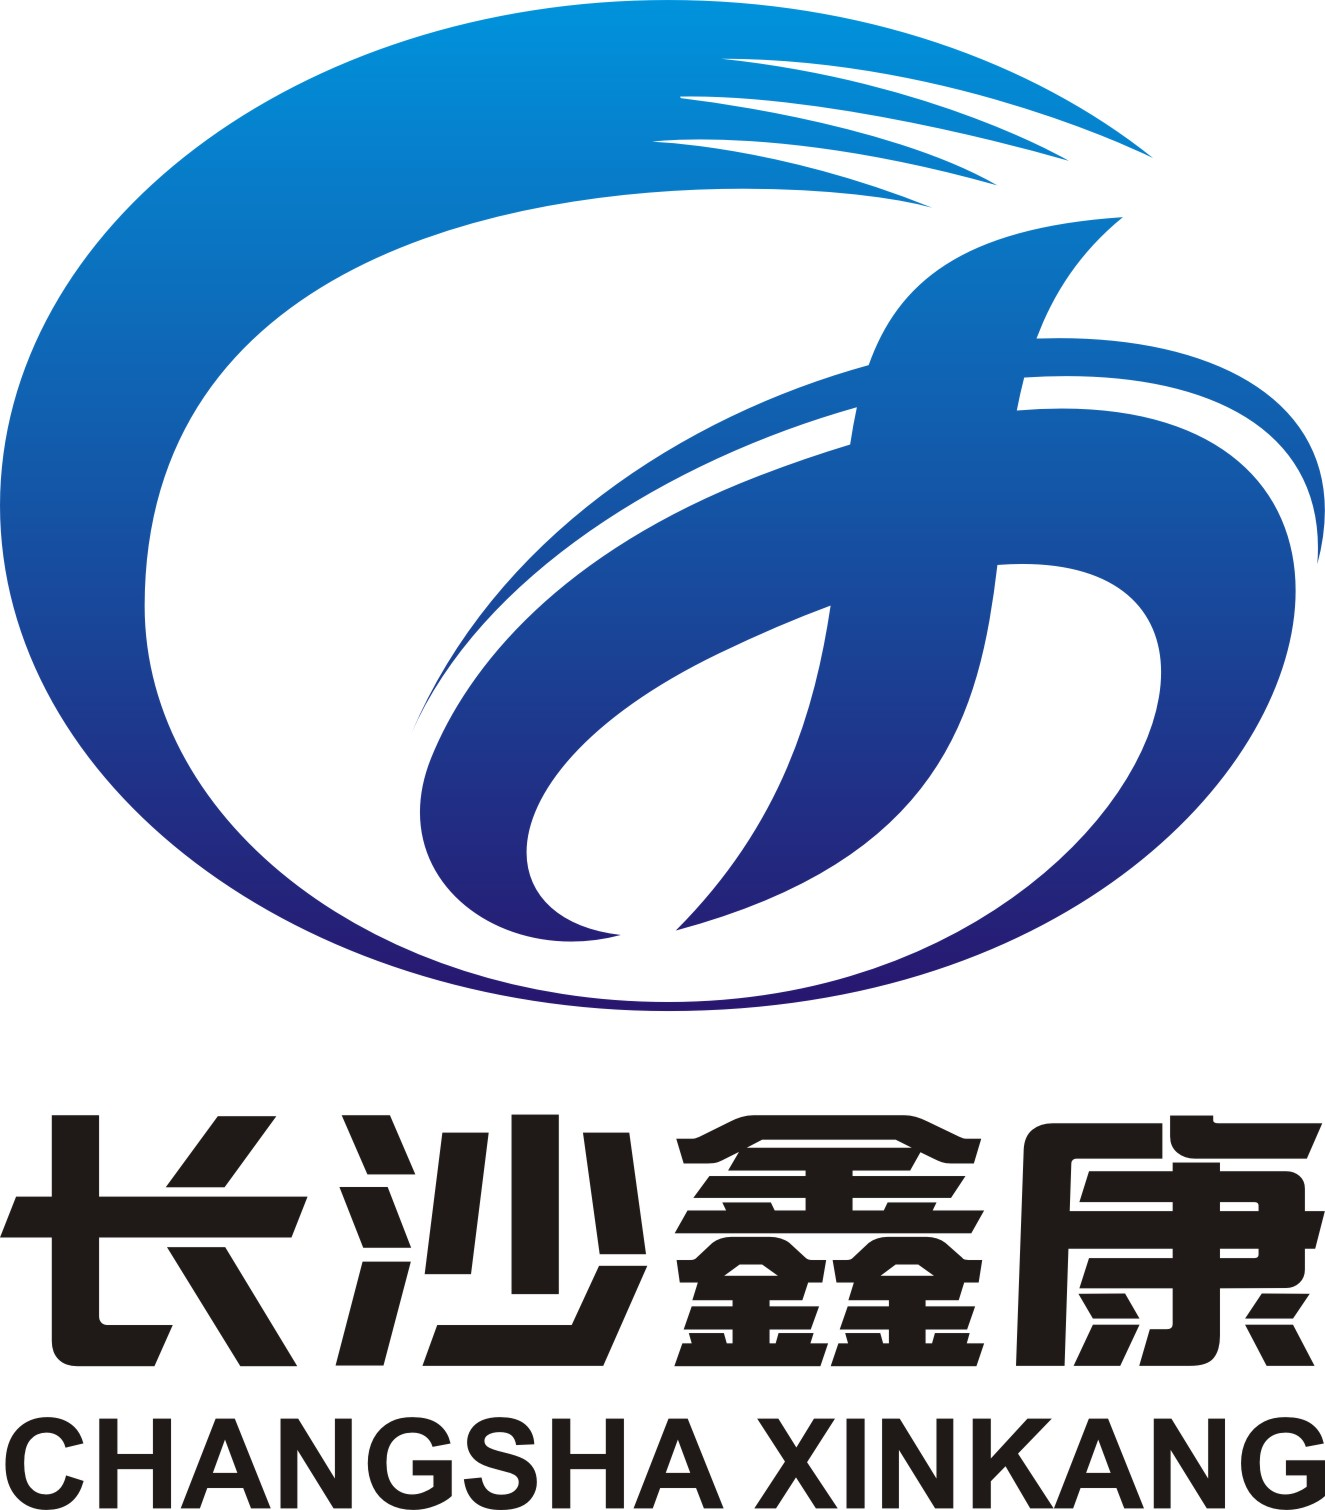 Changsha Xinkang Advanced Materials Co,Ltd logo